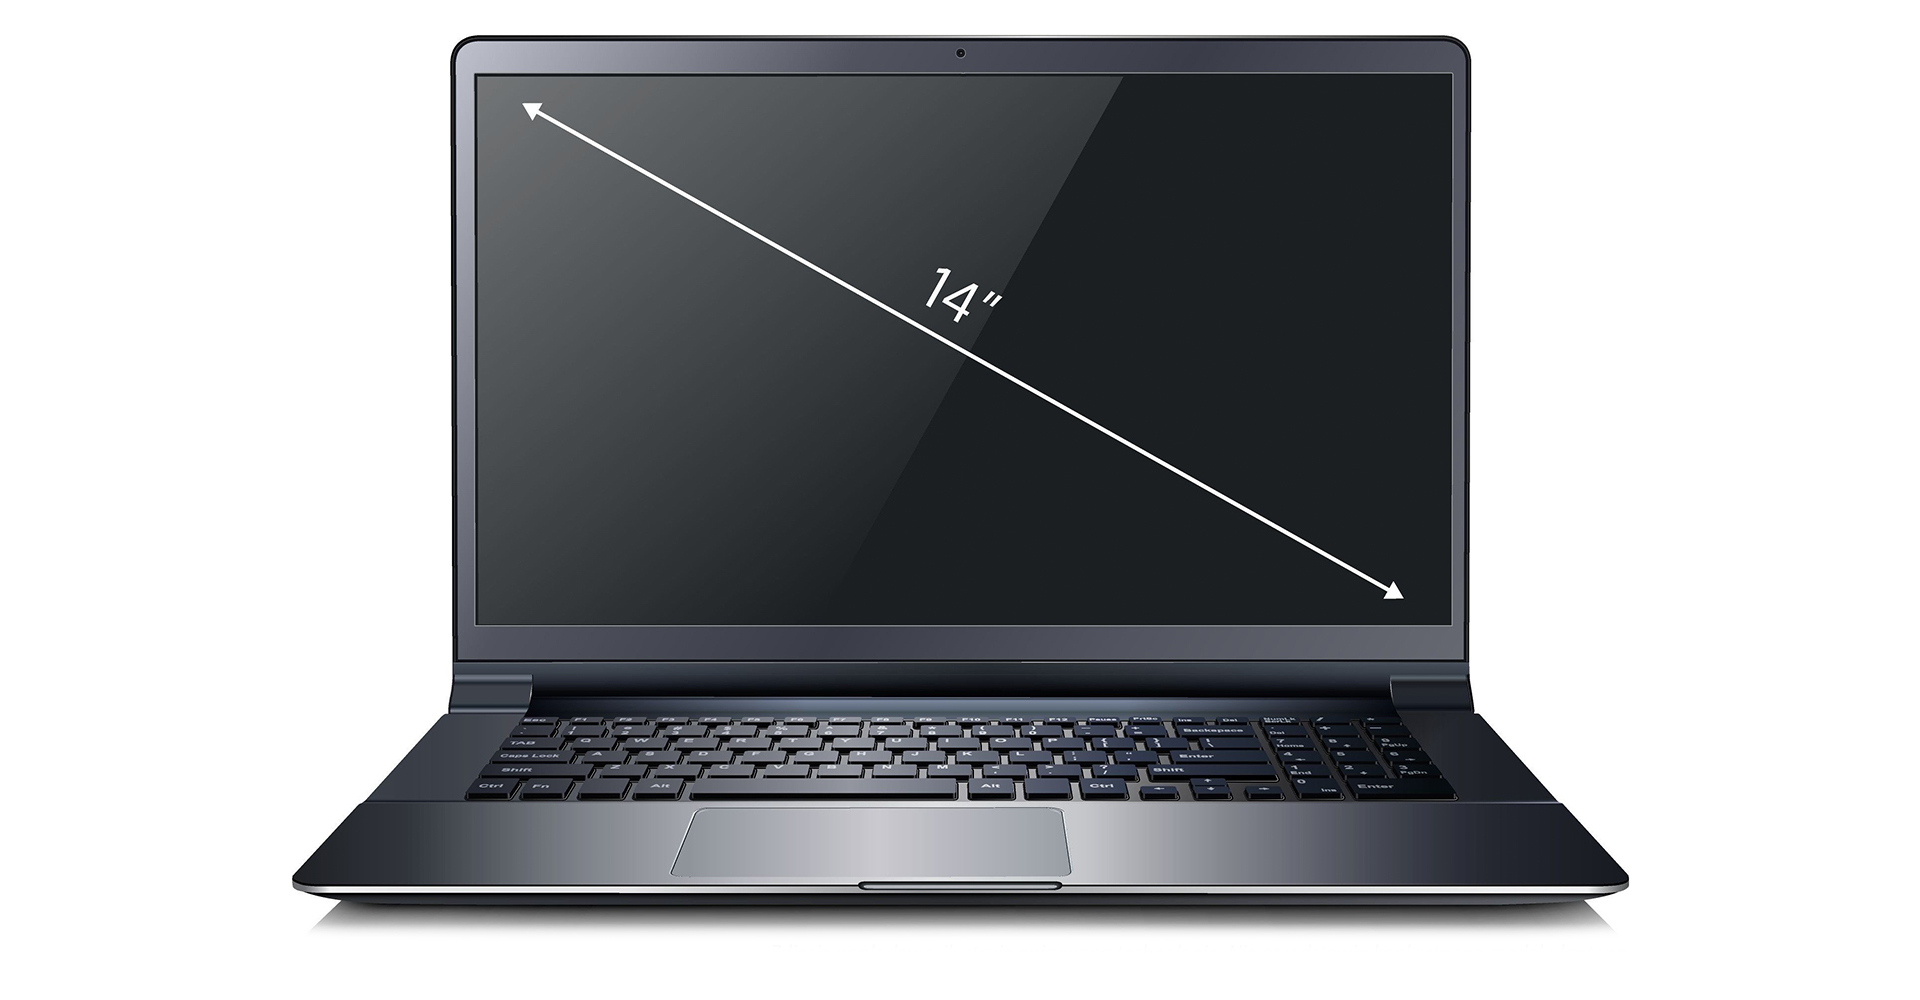 HP EliteBook 745 G6 (6XE88EA)                             14-tollise diagonaaliga